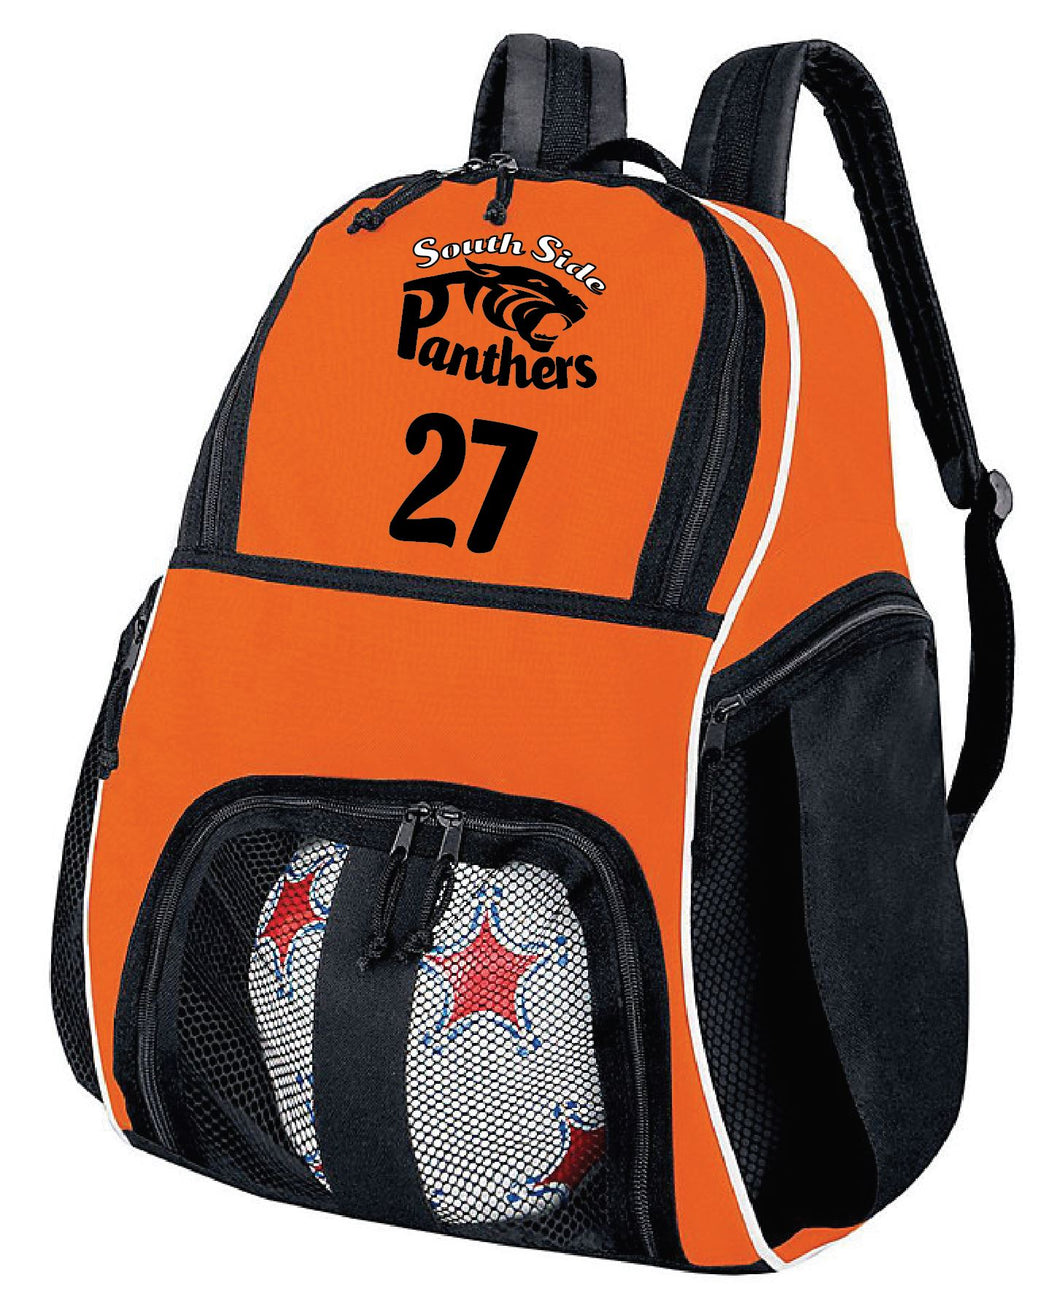 Panthers Back-pack with team number